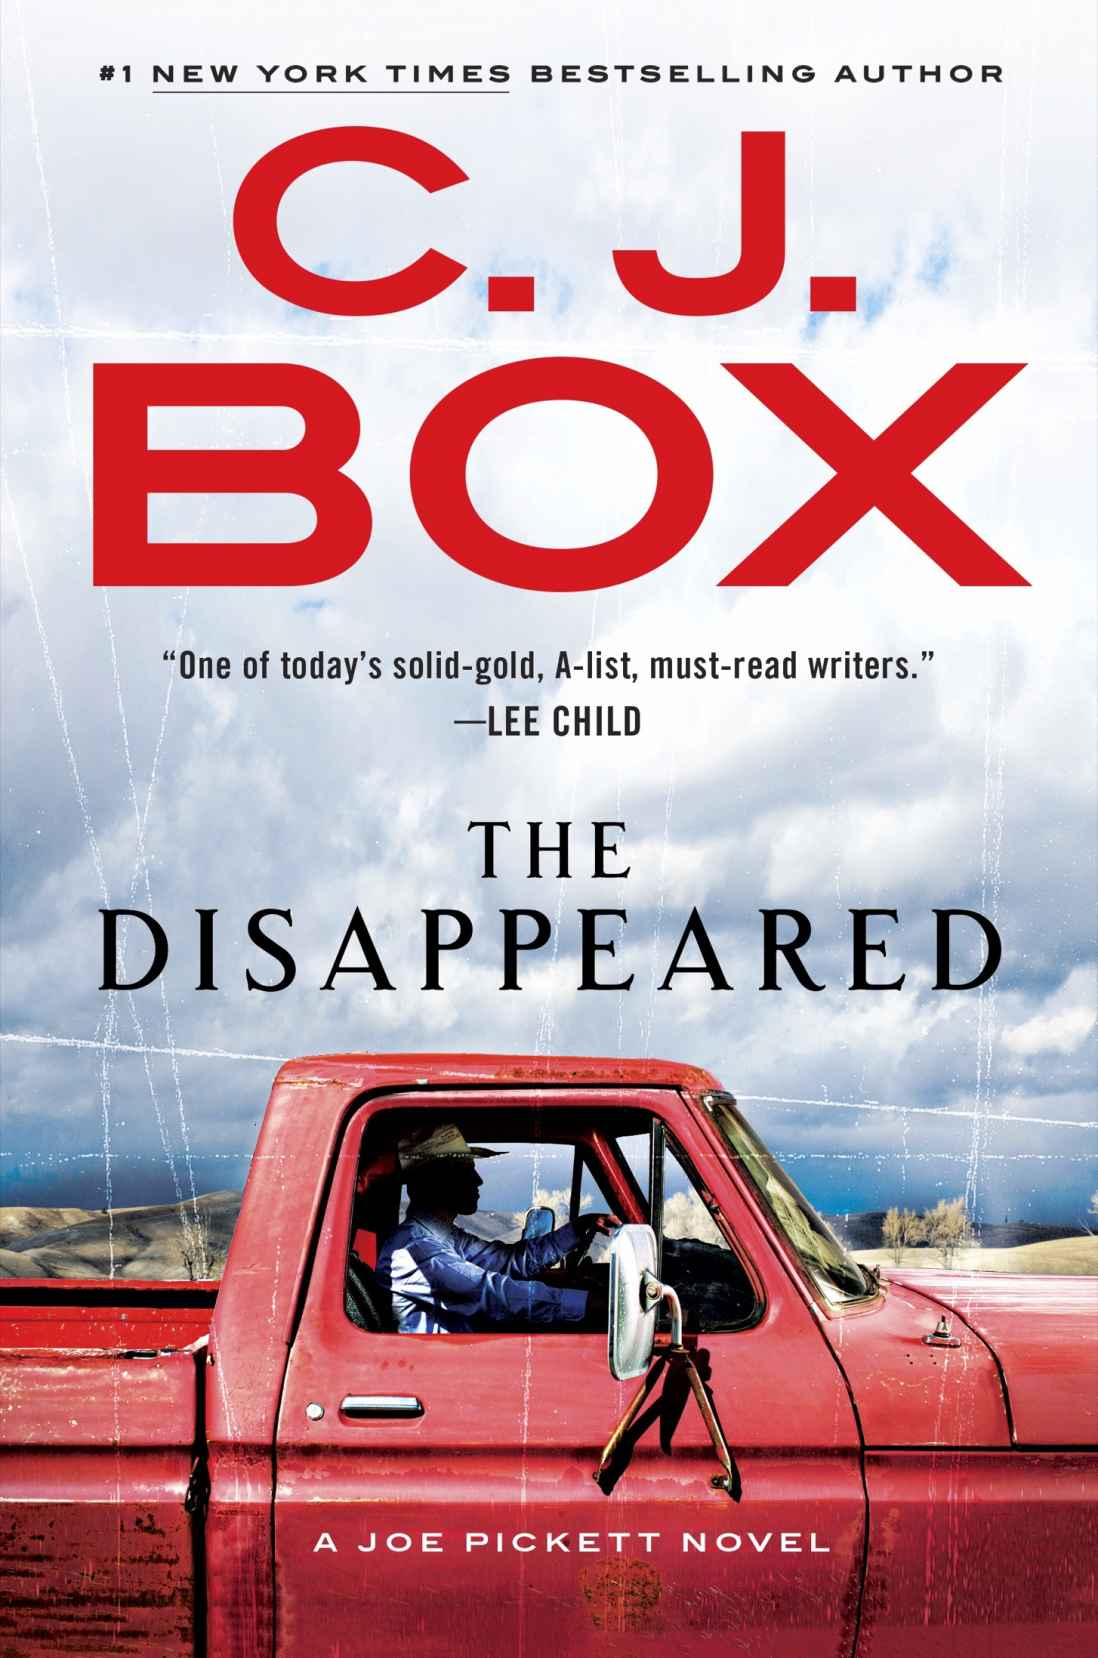 The Disappeared - C. J. Box [kindle] [mobi]